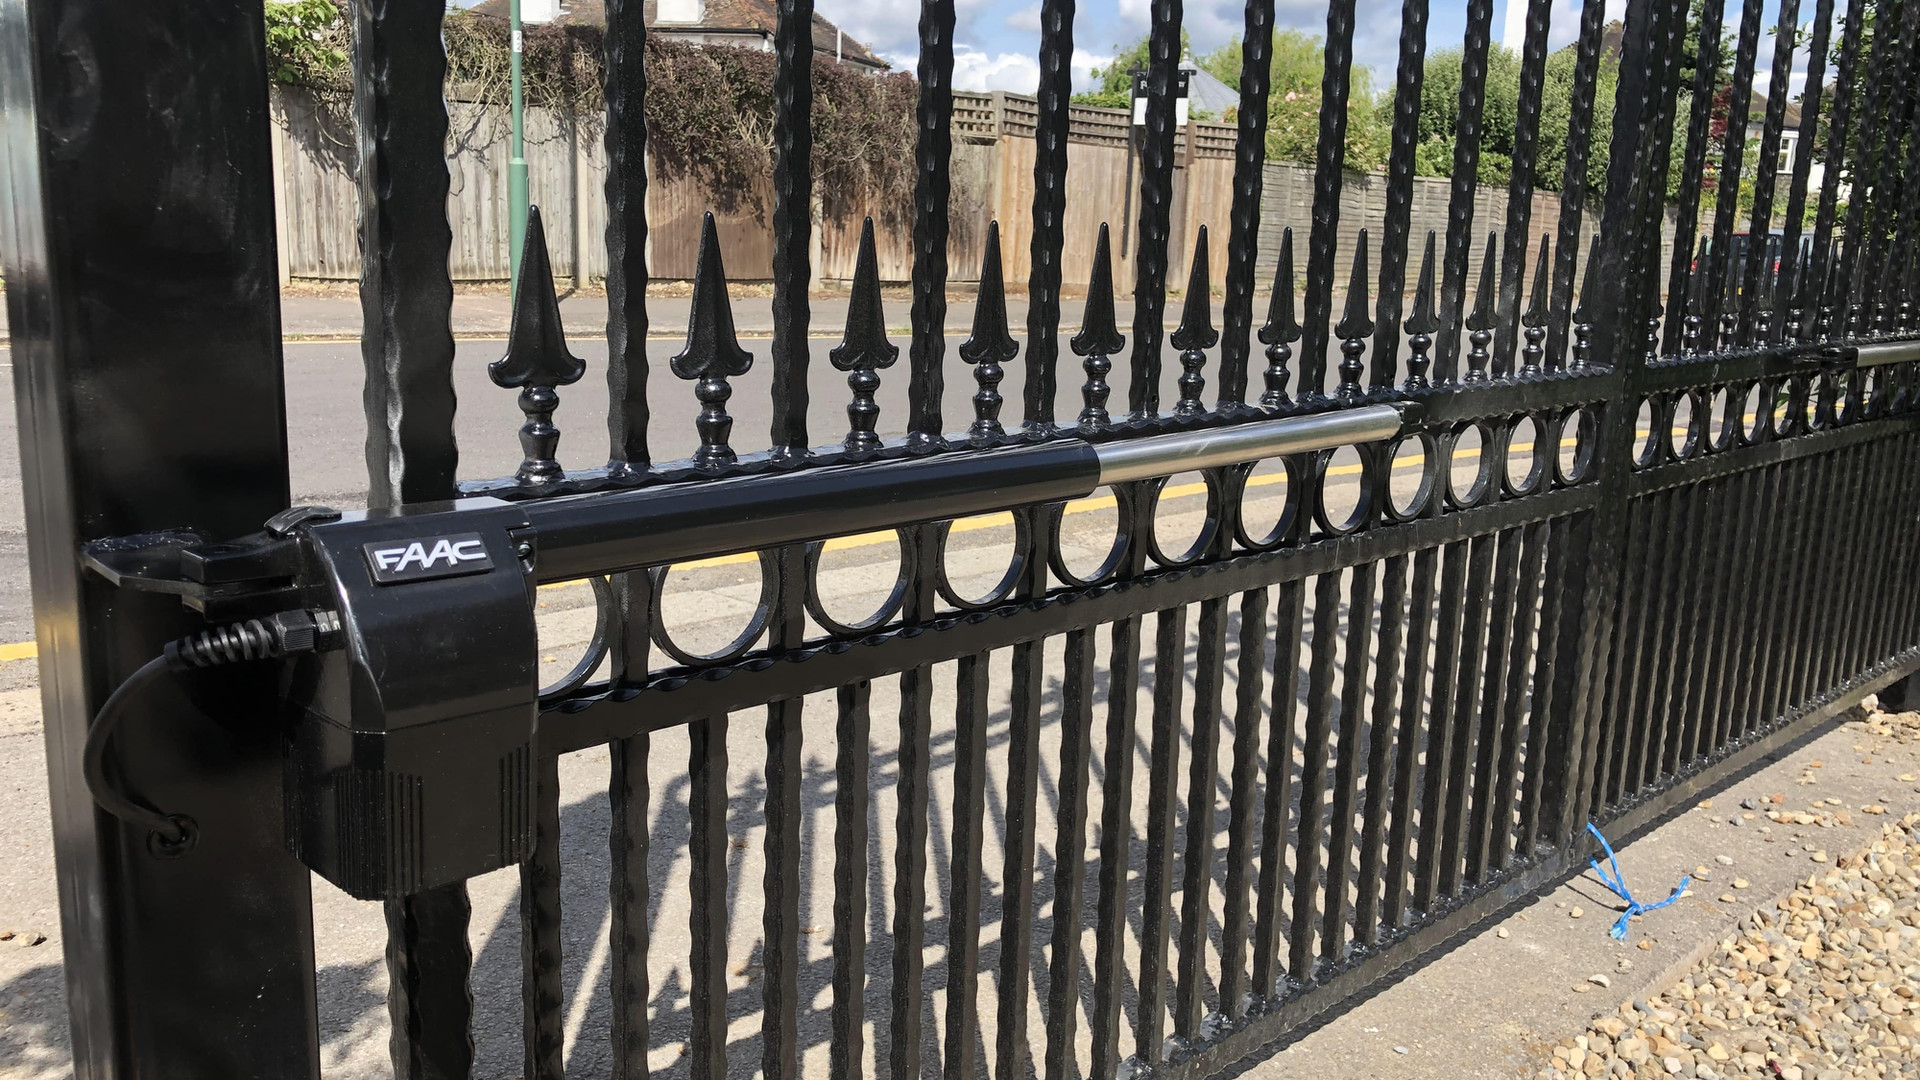 Swing Automated Gate With FAAC Operator